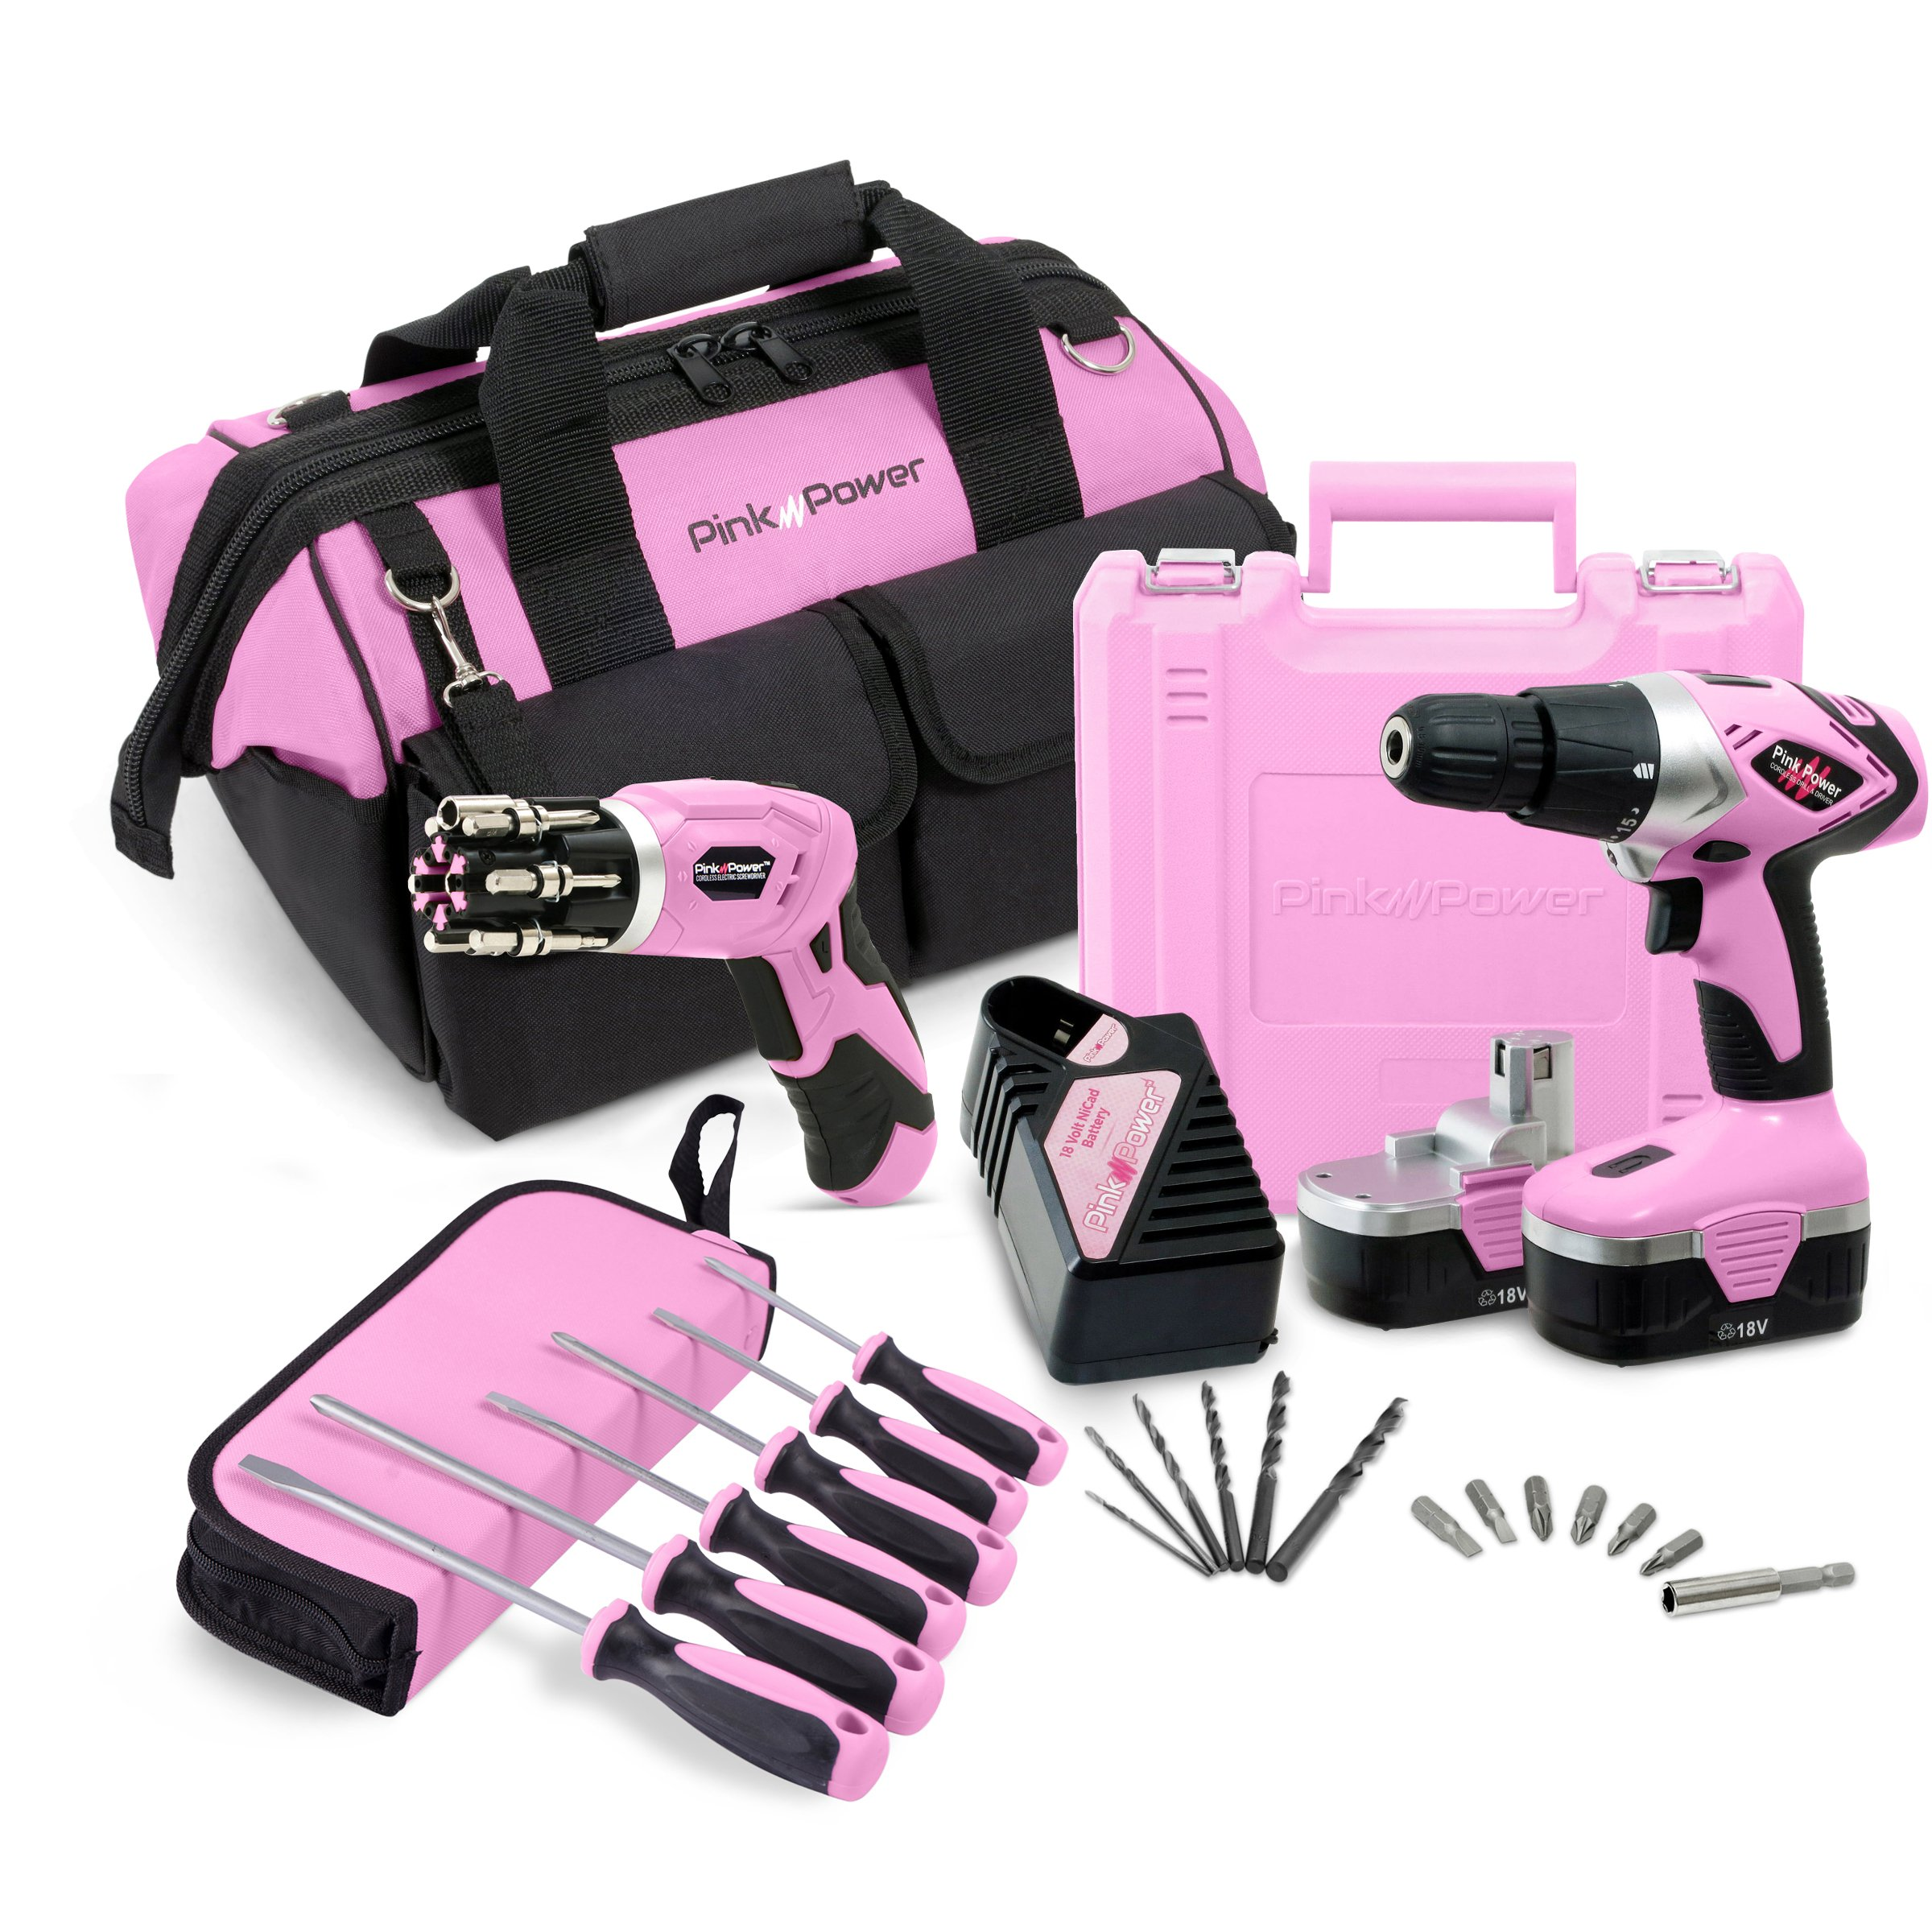 "Pink Power 18V Lithium-Ion Cordless Drill Driver & Electric Screwdriver Combo Kit with 20"" Tool Bag by Pink Power"